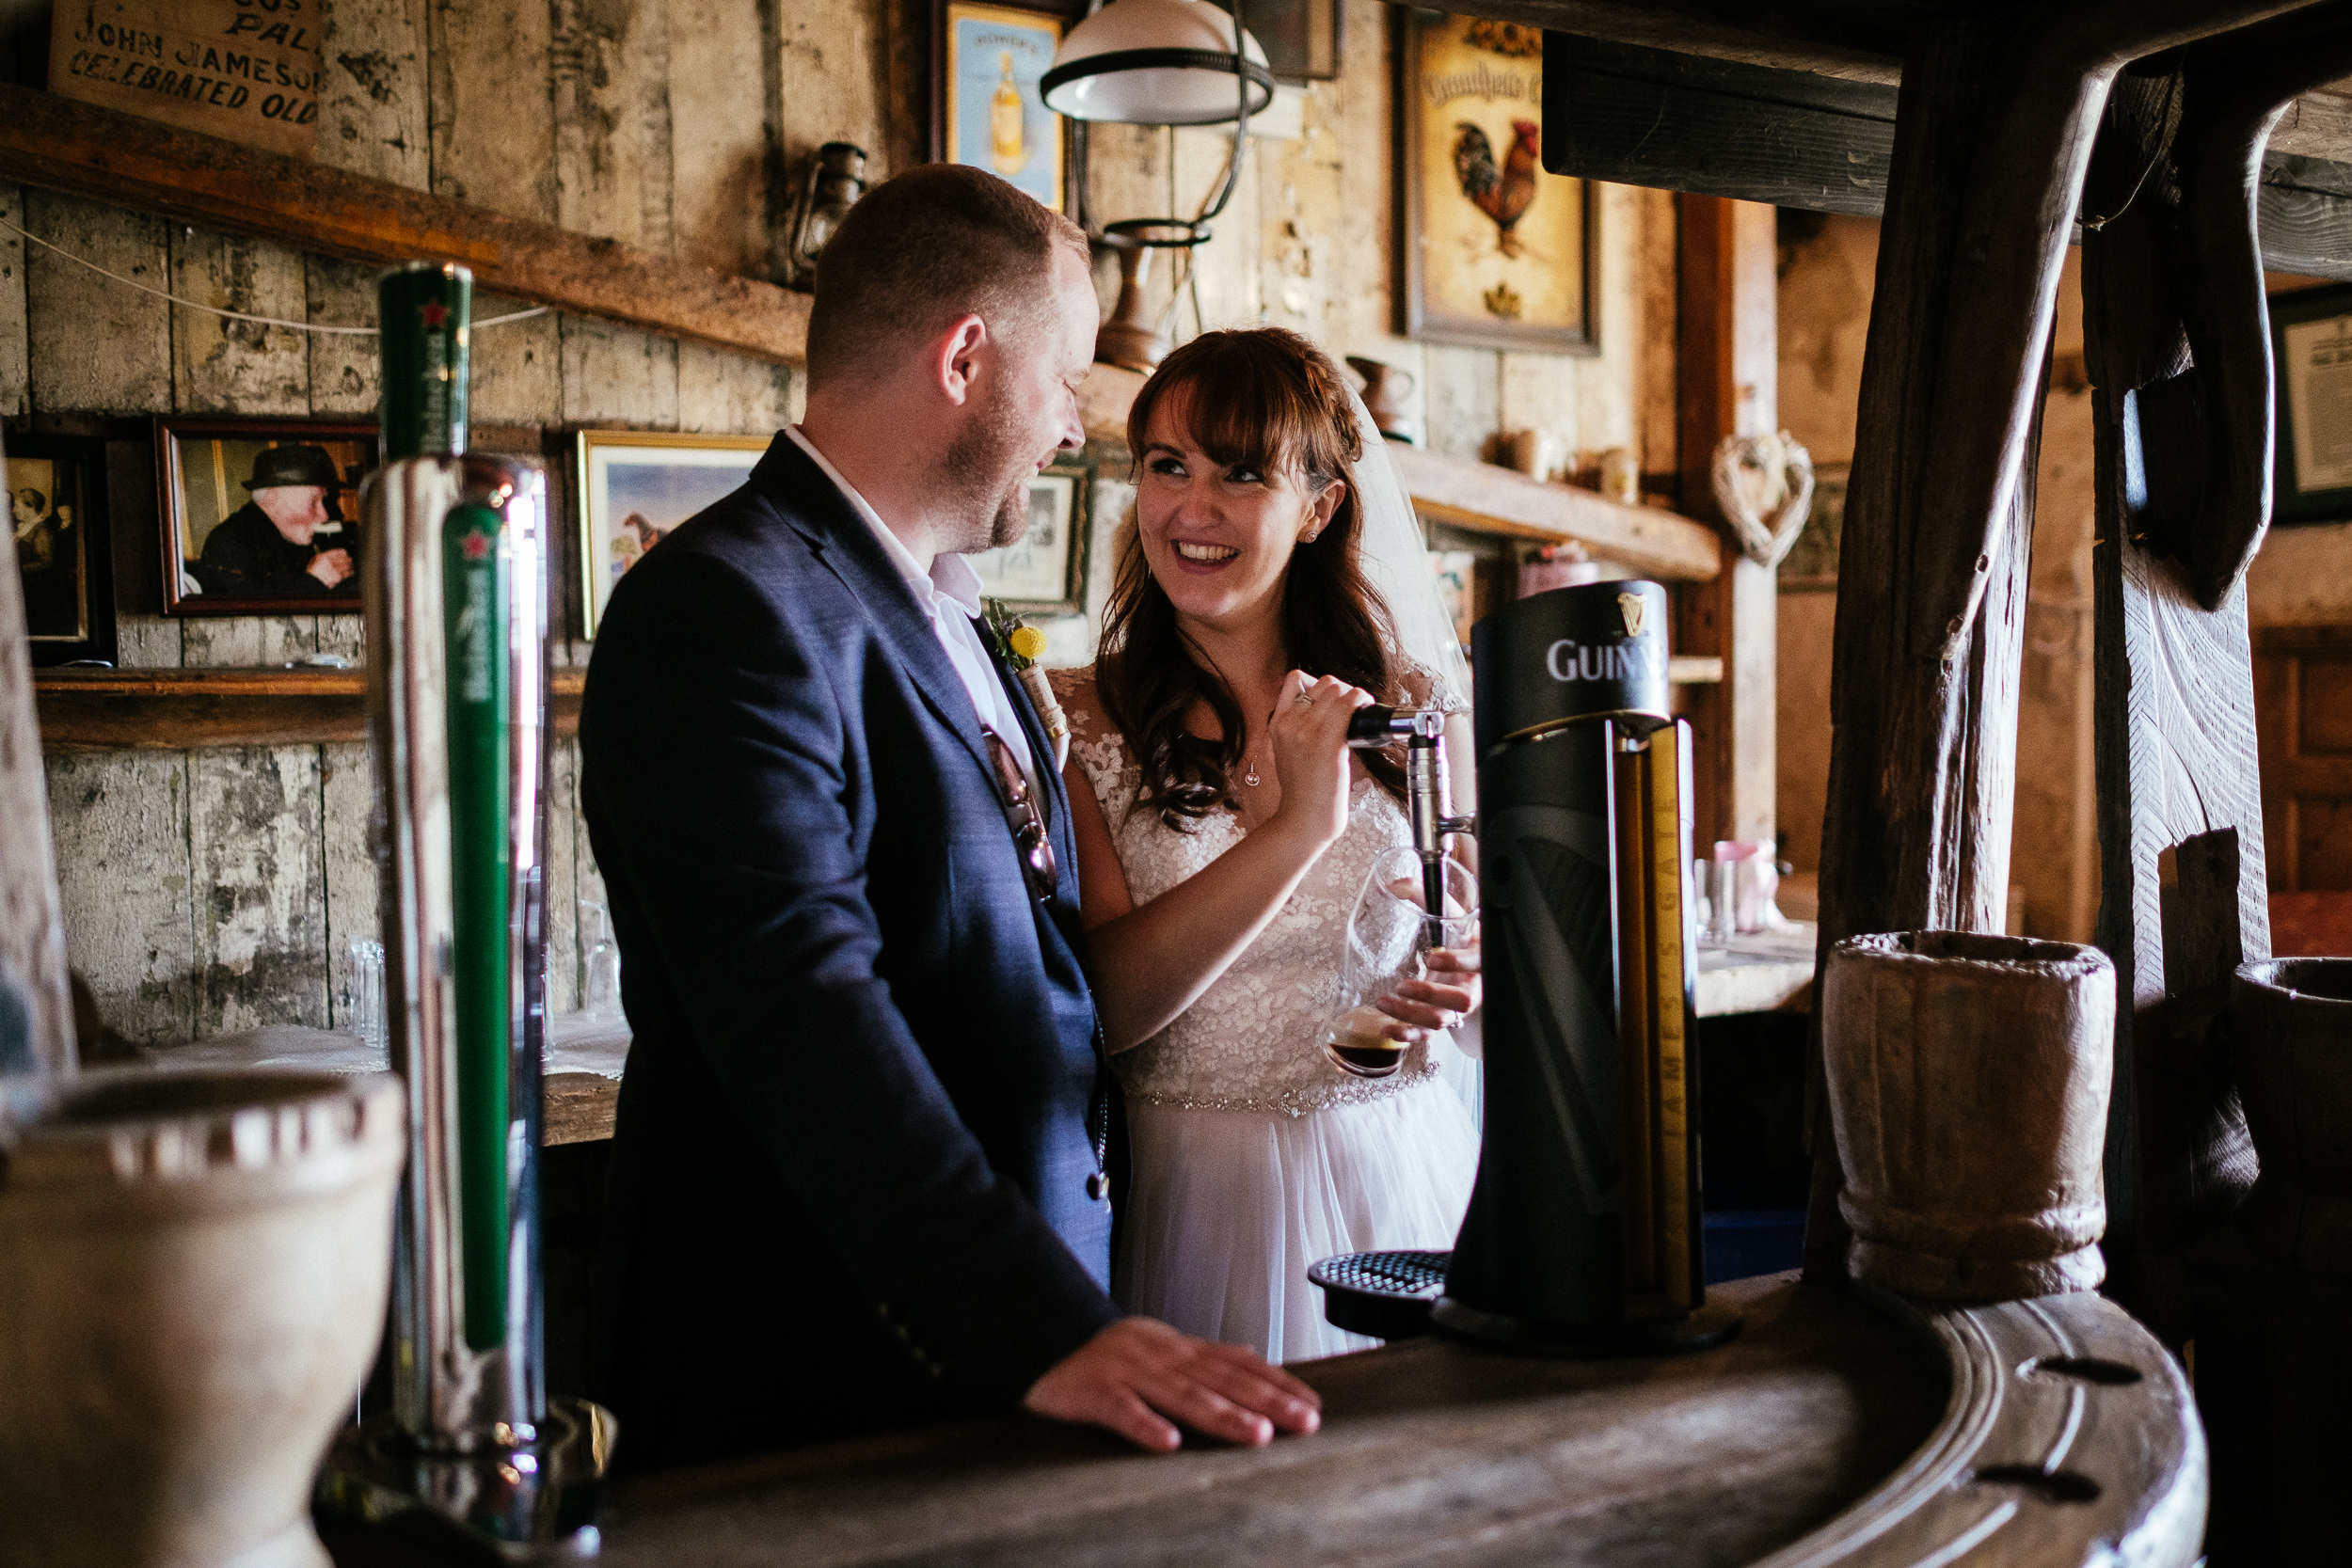 bride pulling a pint of guinness